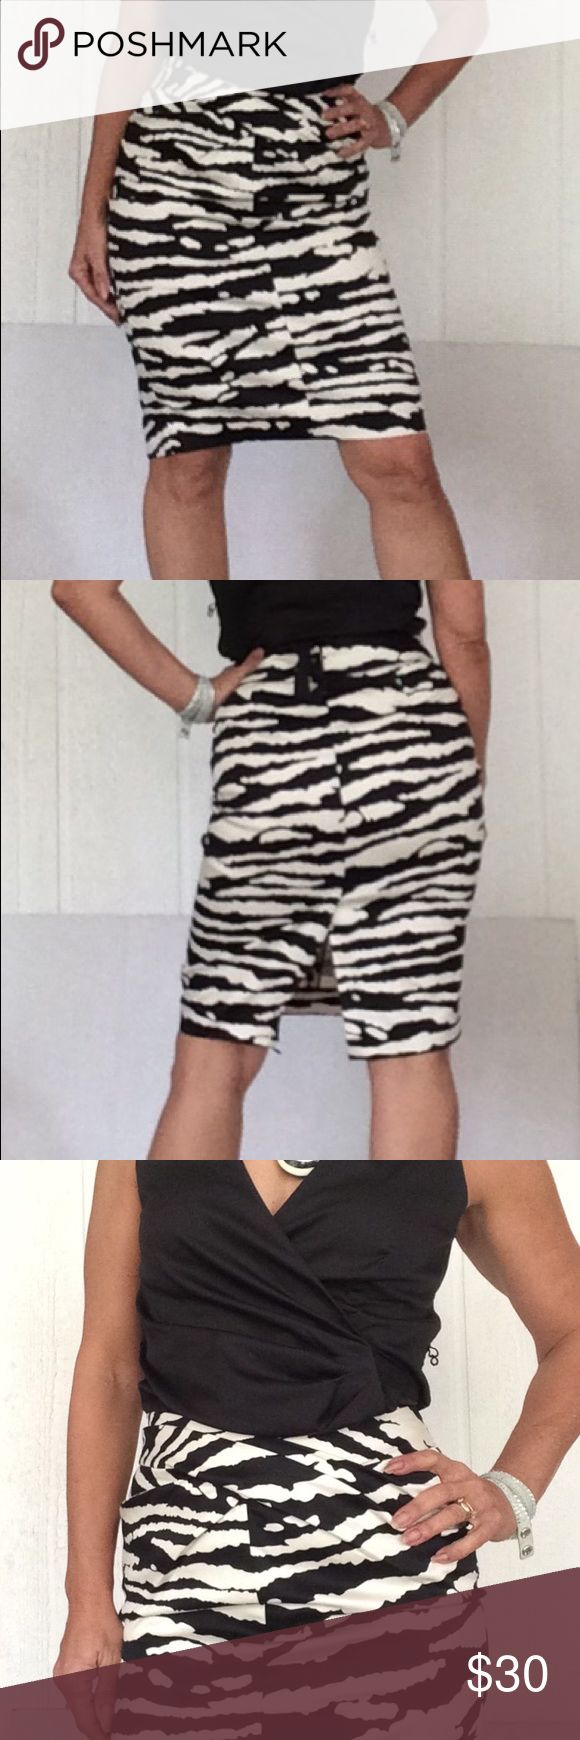 """MICHAEL KORS PENCIL SKIRT EUC Michael Michael Kors pencil skirt. Beautiful addition to your work wardrobe in this fully lined pencil skirt with back kick pleat. Front detail has crossover bands of fabric for slimming effect at waistline.   Zebra print. Hidden back zipper. No pulls, stains, rips or tears. Excellent condition only worn a few times.  All measurements are taken flat across and approximate length 23.5"""", waist 14.5"""". MICHAEL Michael Kors Skirts"""